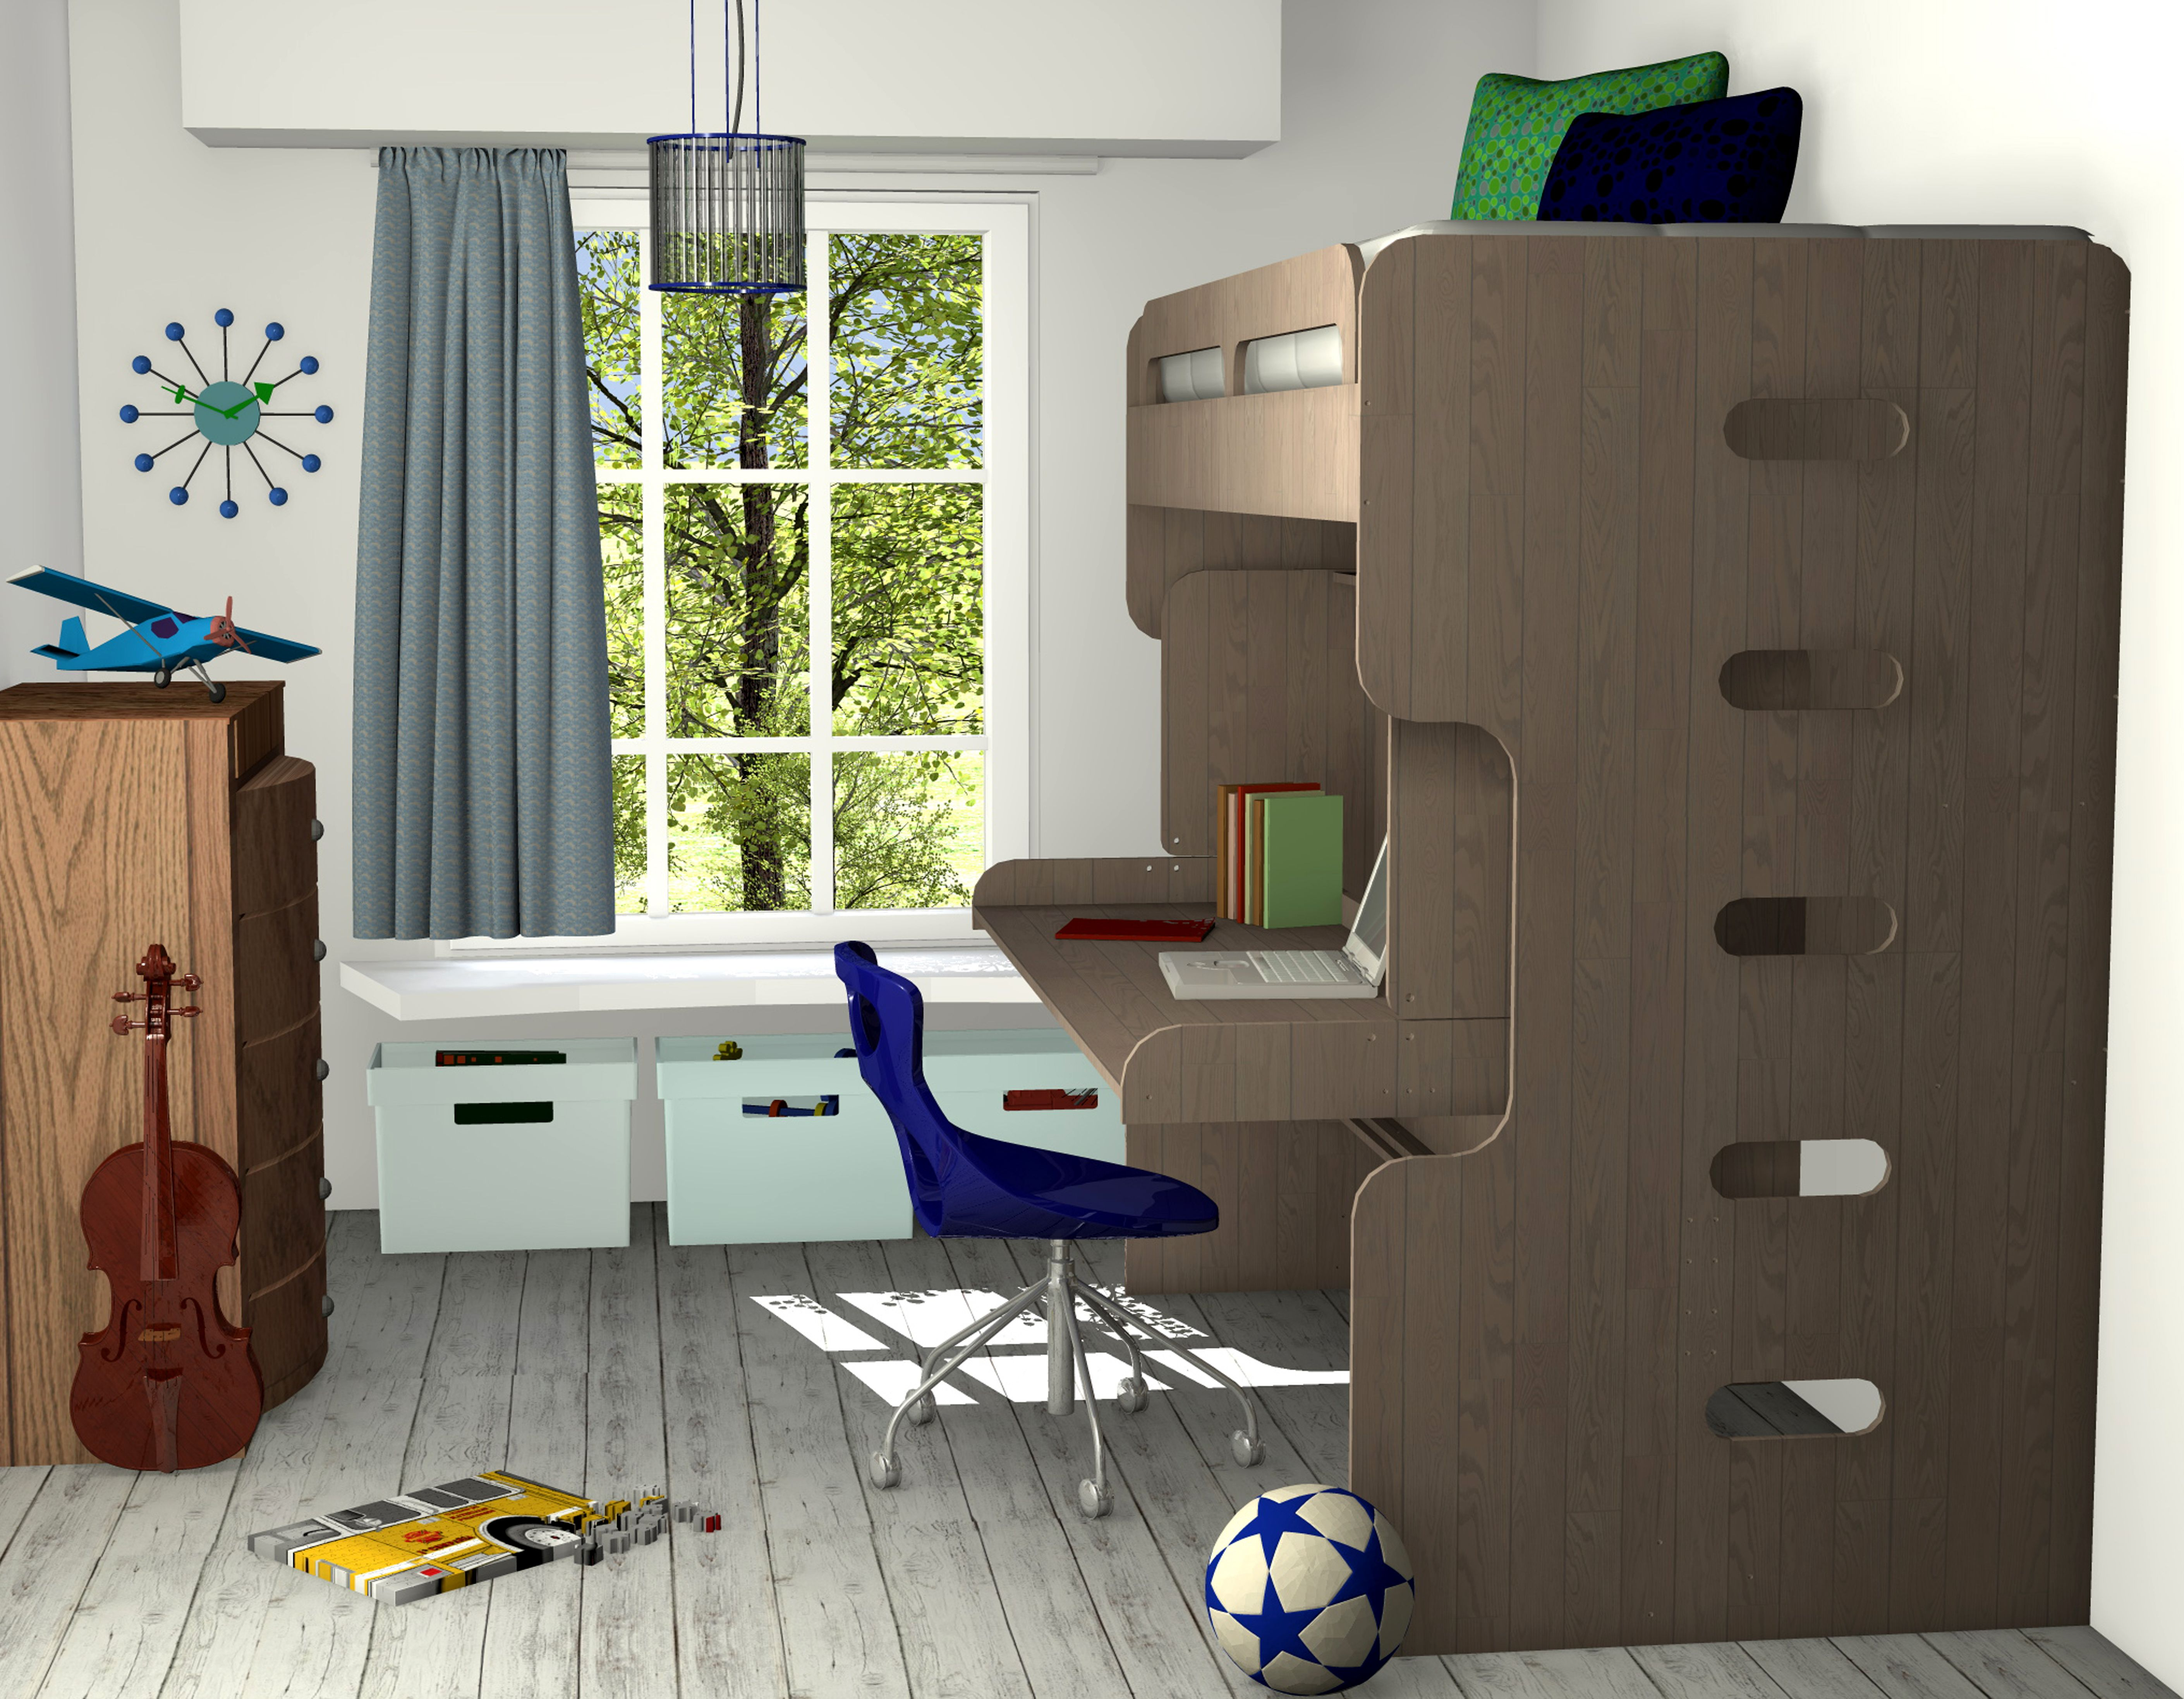 Junior loft bed ideas  A little boysu room with a muted color palette we designed for a